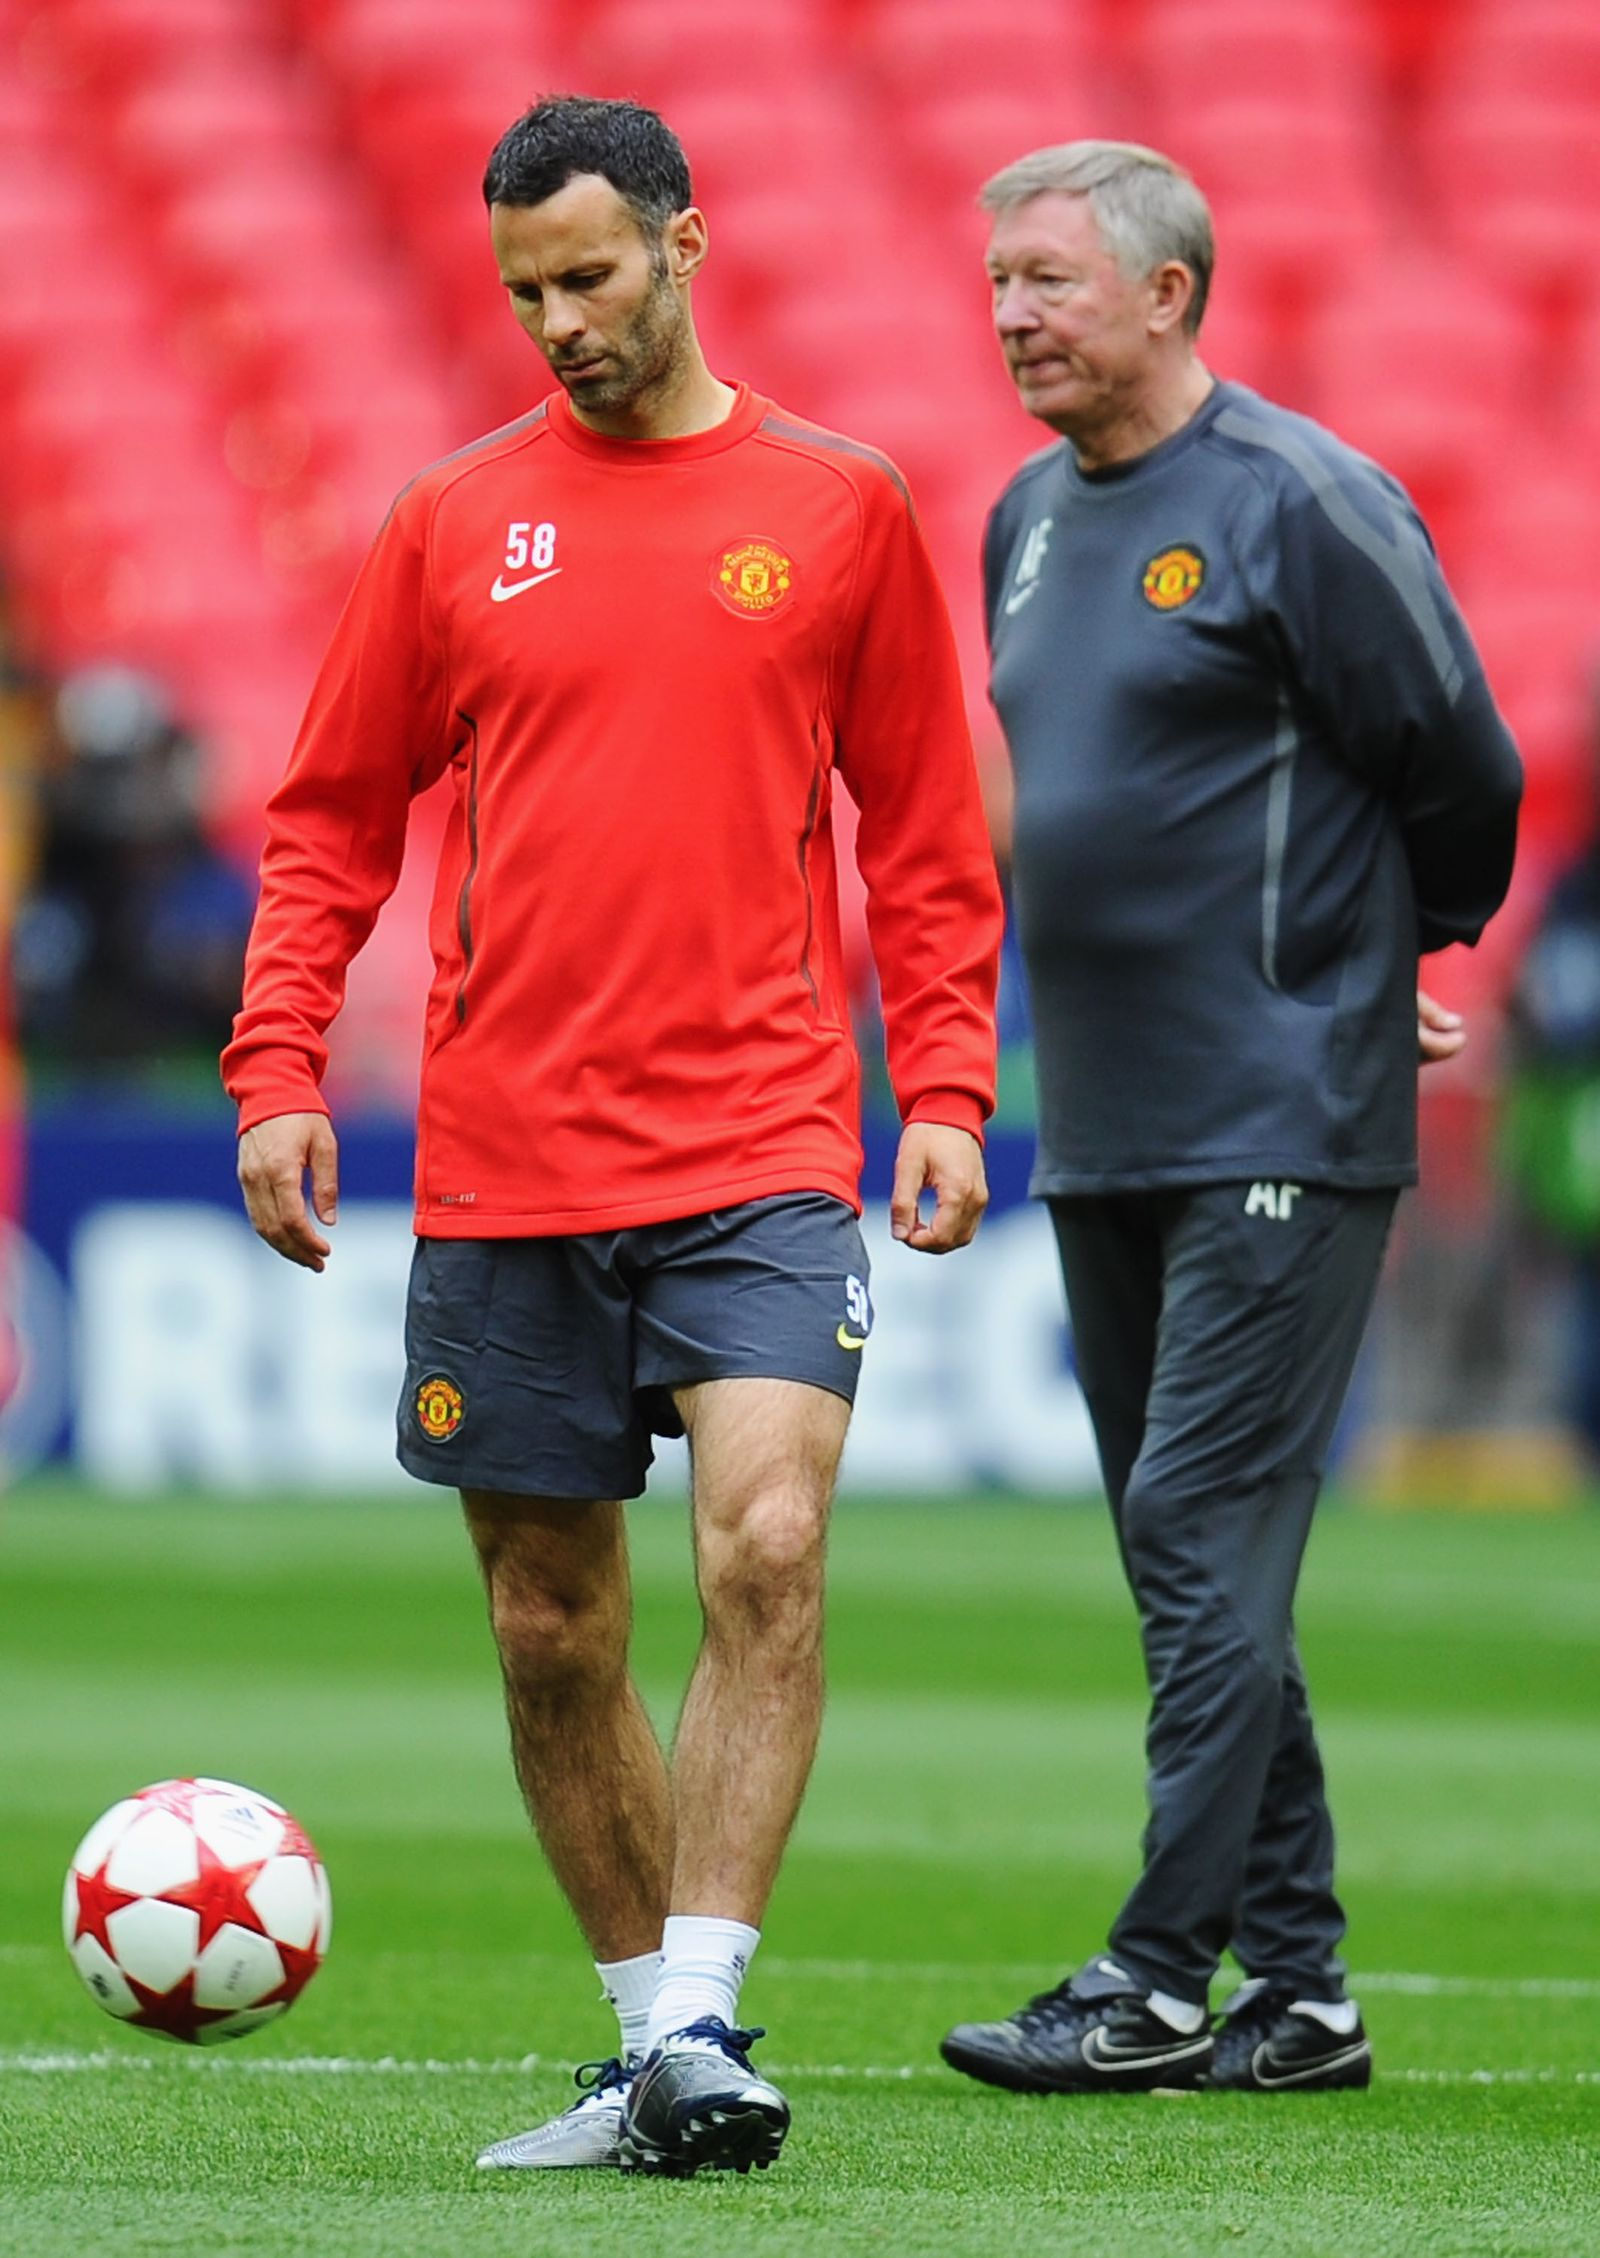 Ryan Giggs / Sir Alex Ferguson